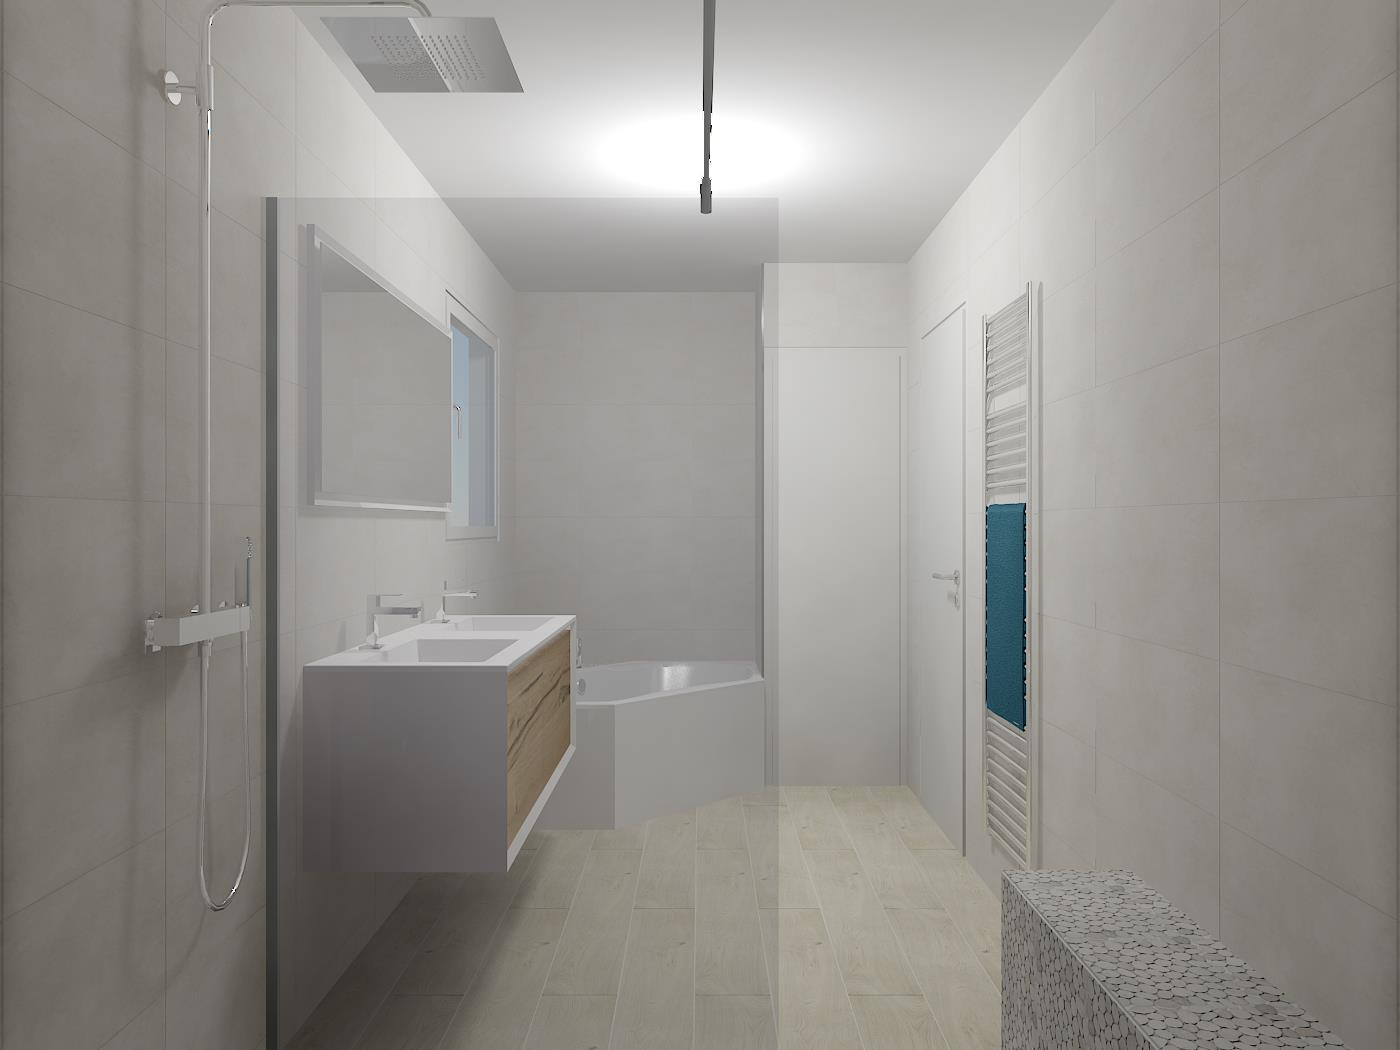 mattout carrelage dem16617 v3 2 1 bathroom by mattout